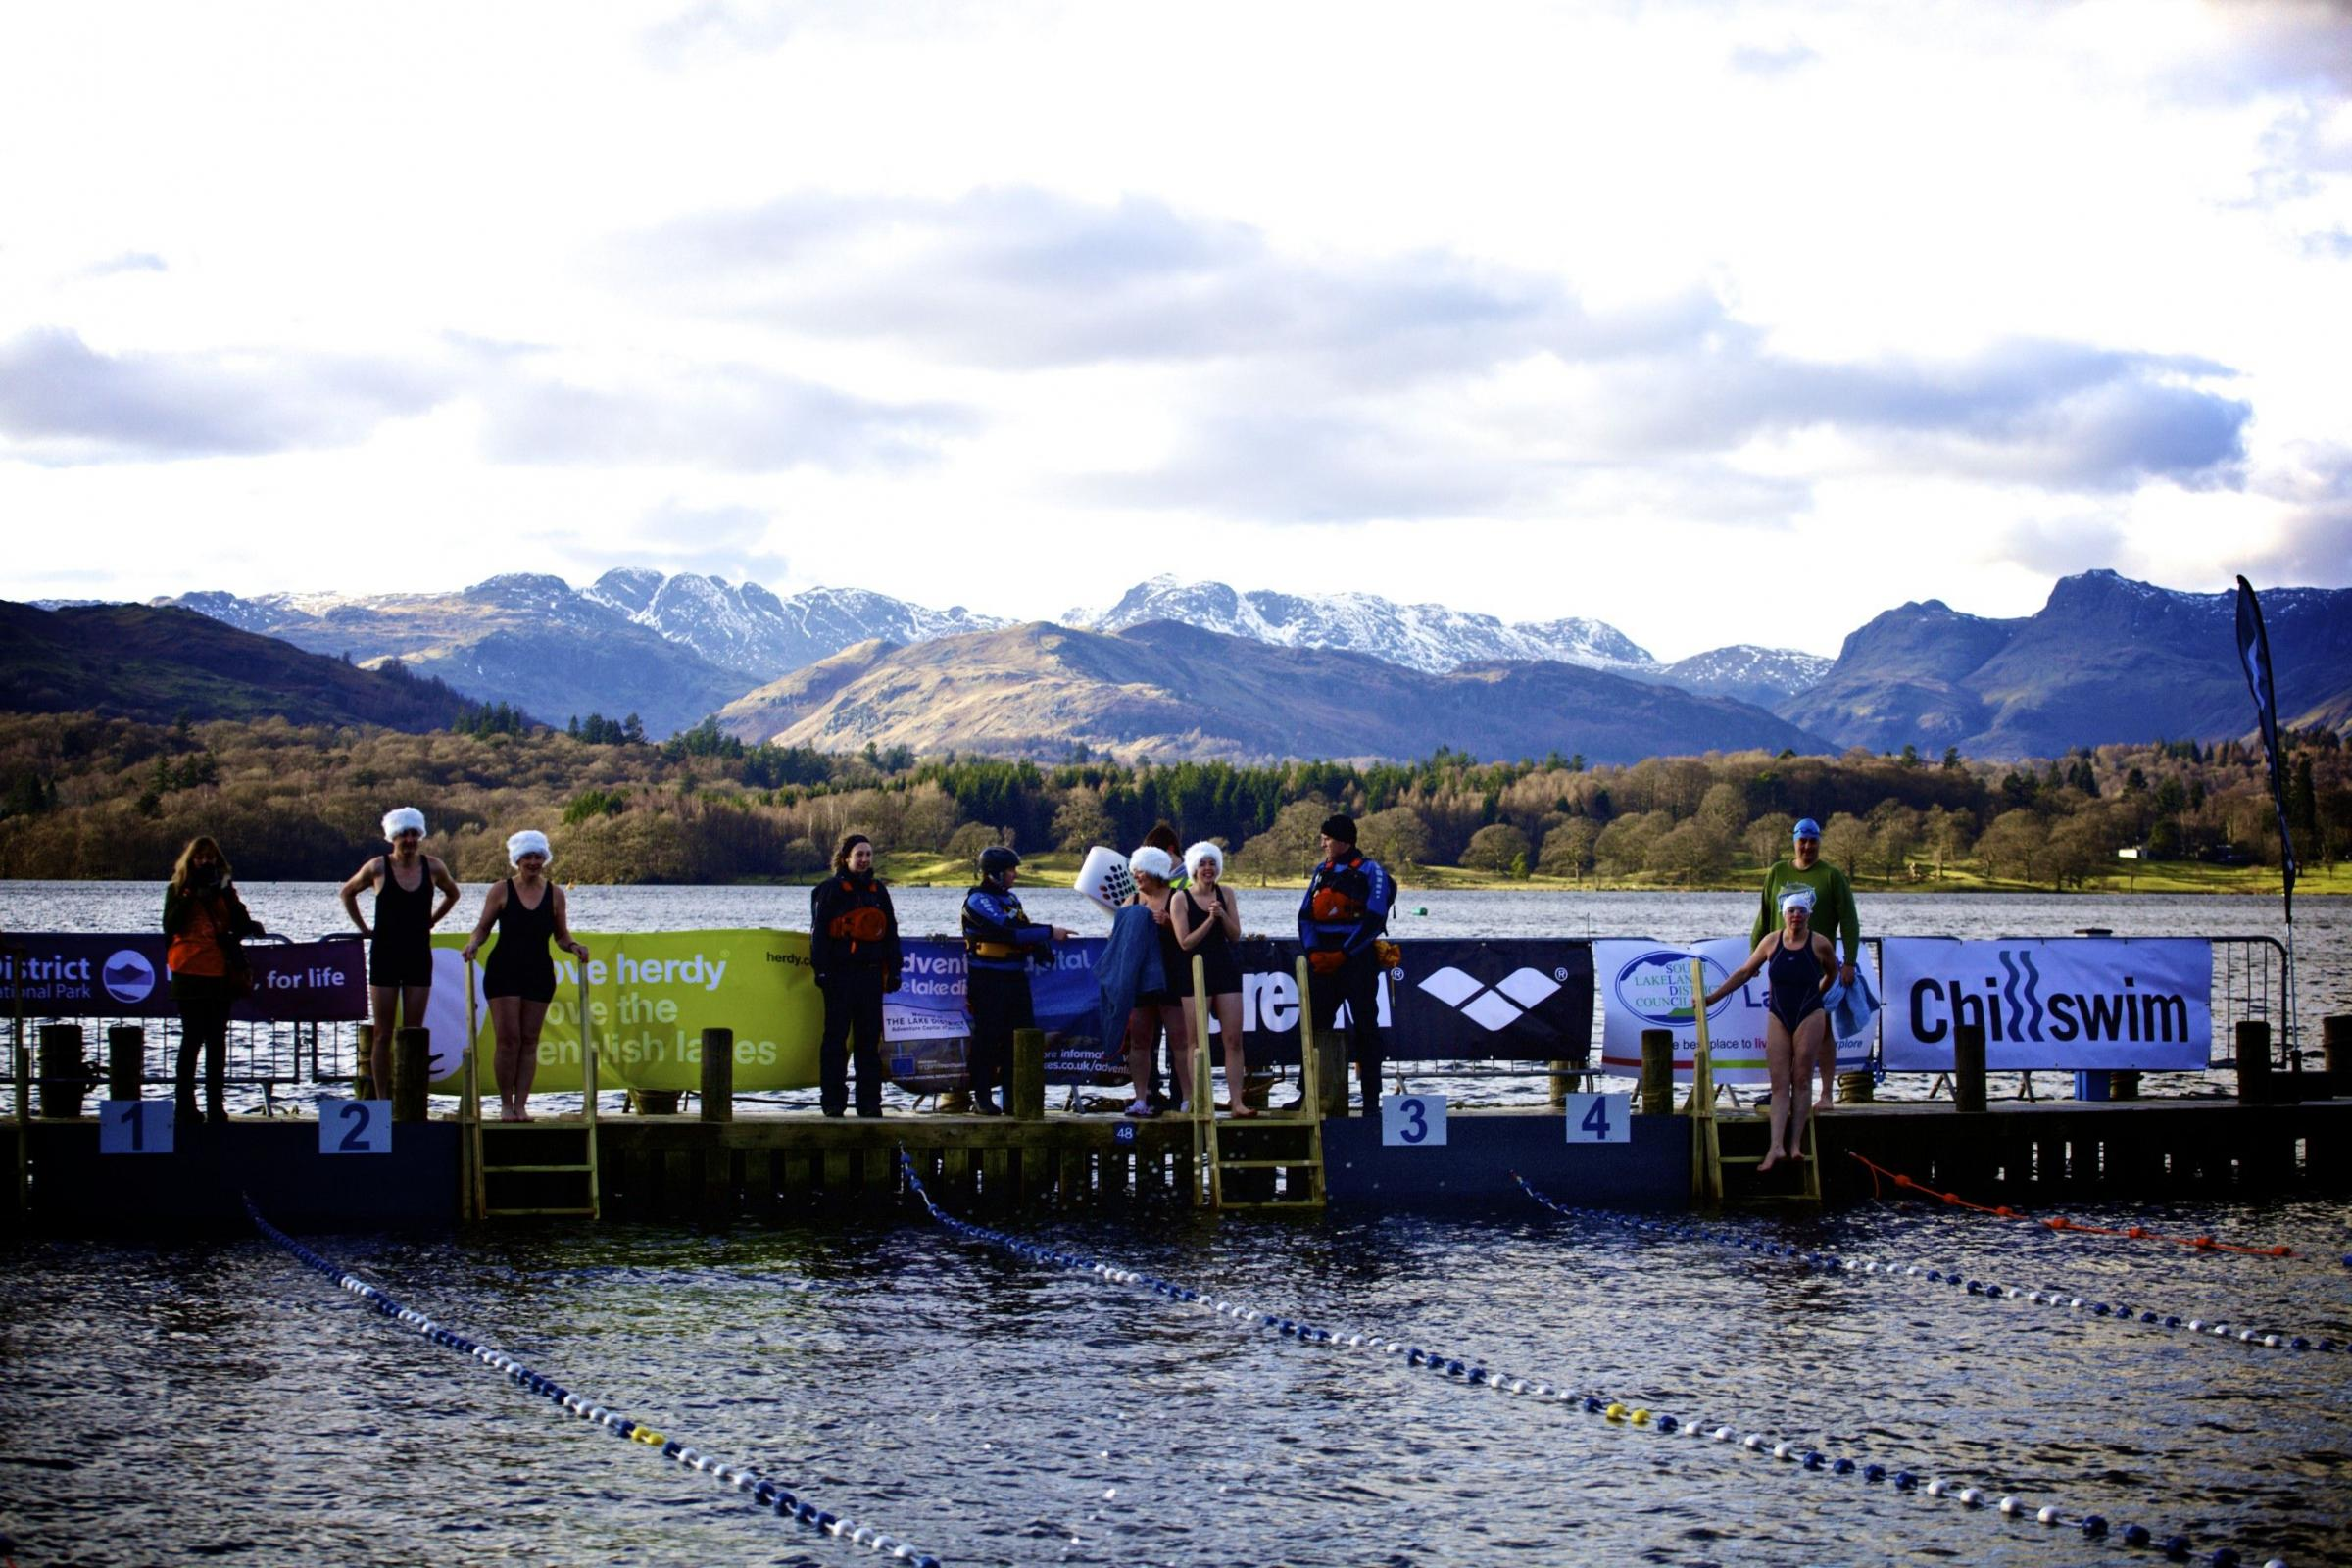 Swimmers chilling in the Lake District